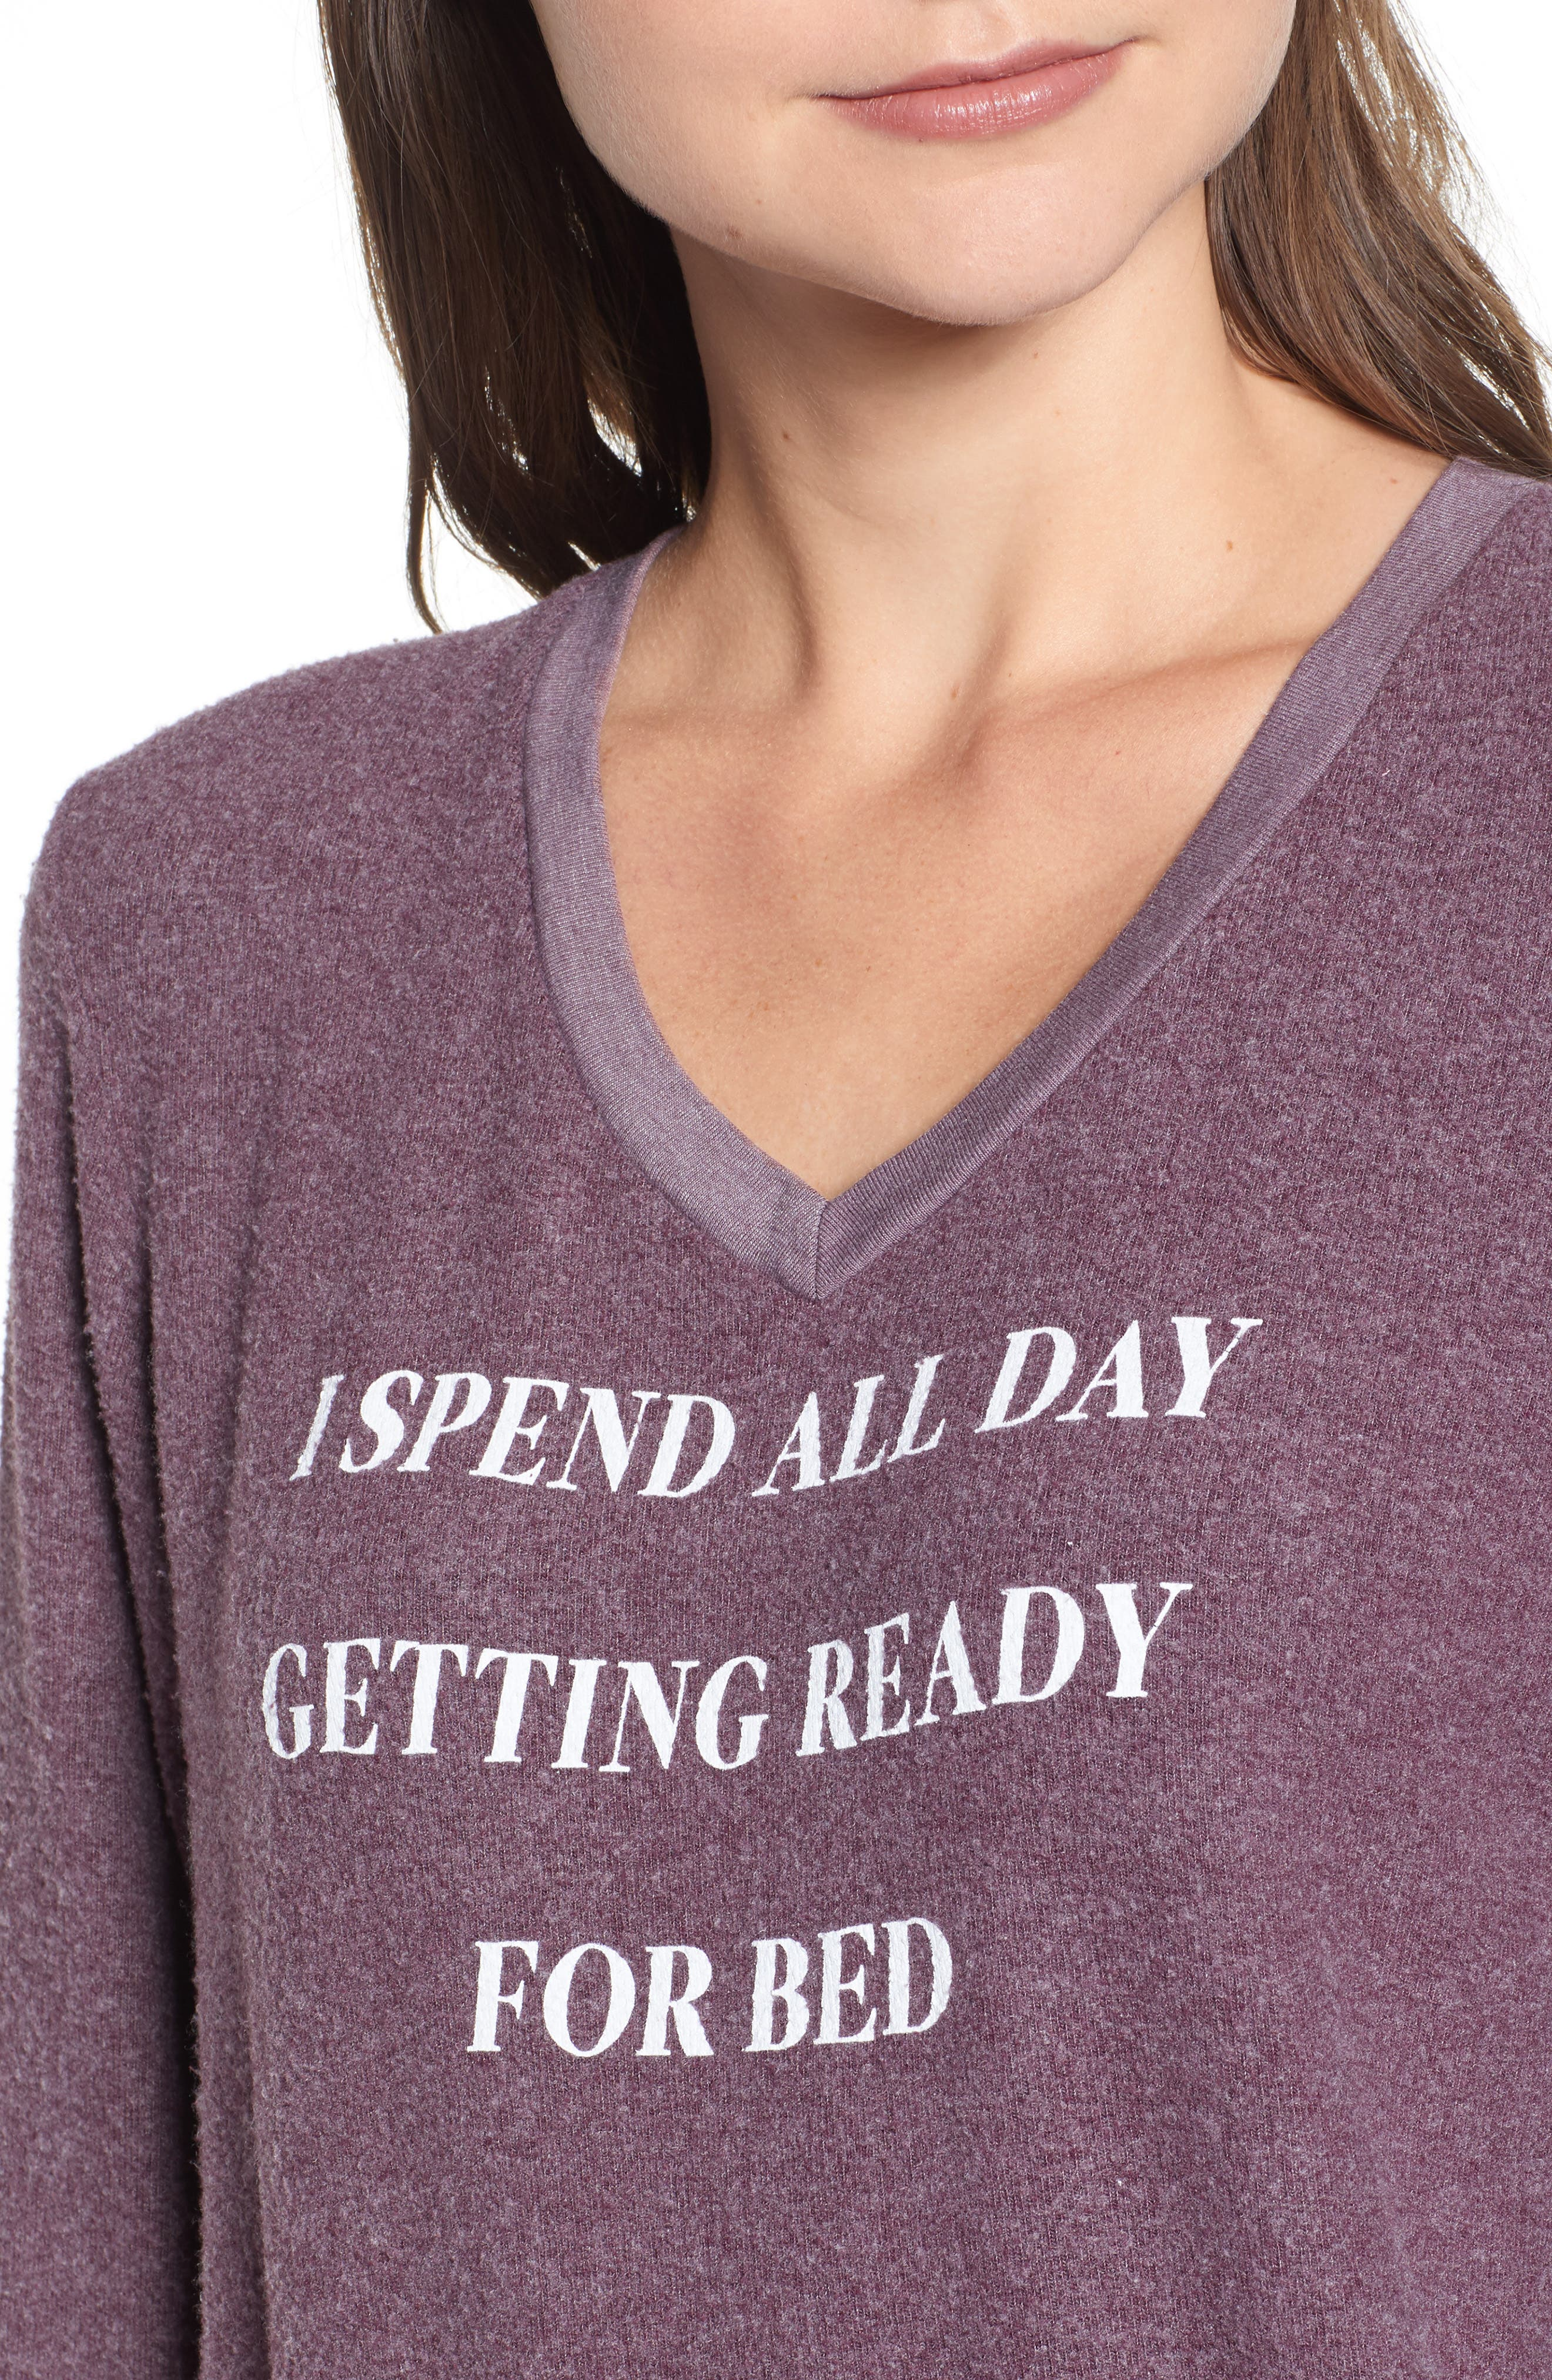 Ready For Bed Baggy Beach Jumper Sweatshirt,                             Alternate thumbnail 4, color,                             CRUSHED BERRY